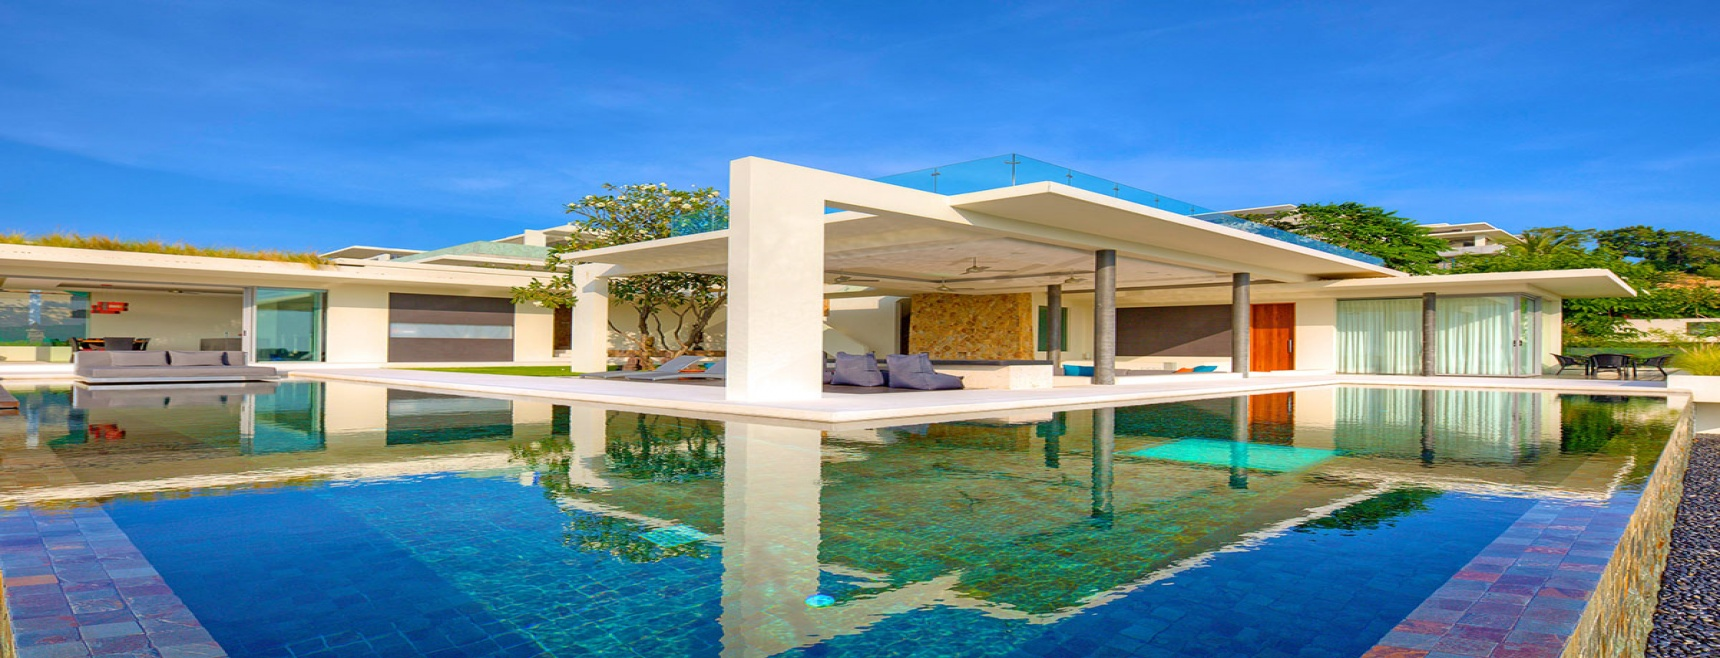 Luxury Modern Villa in Gated Community Koh Samui (Thai-Real.com)